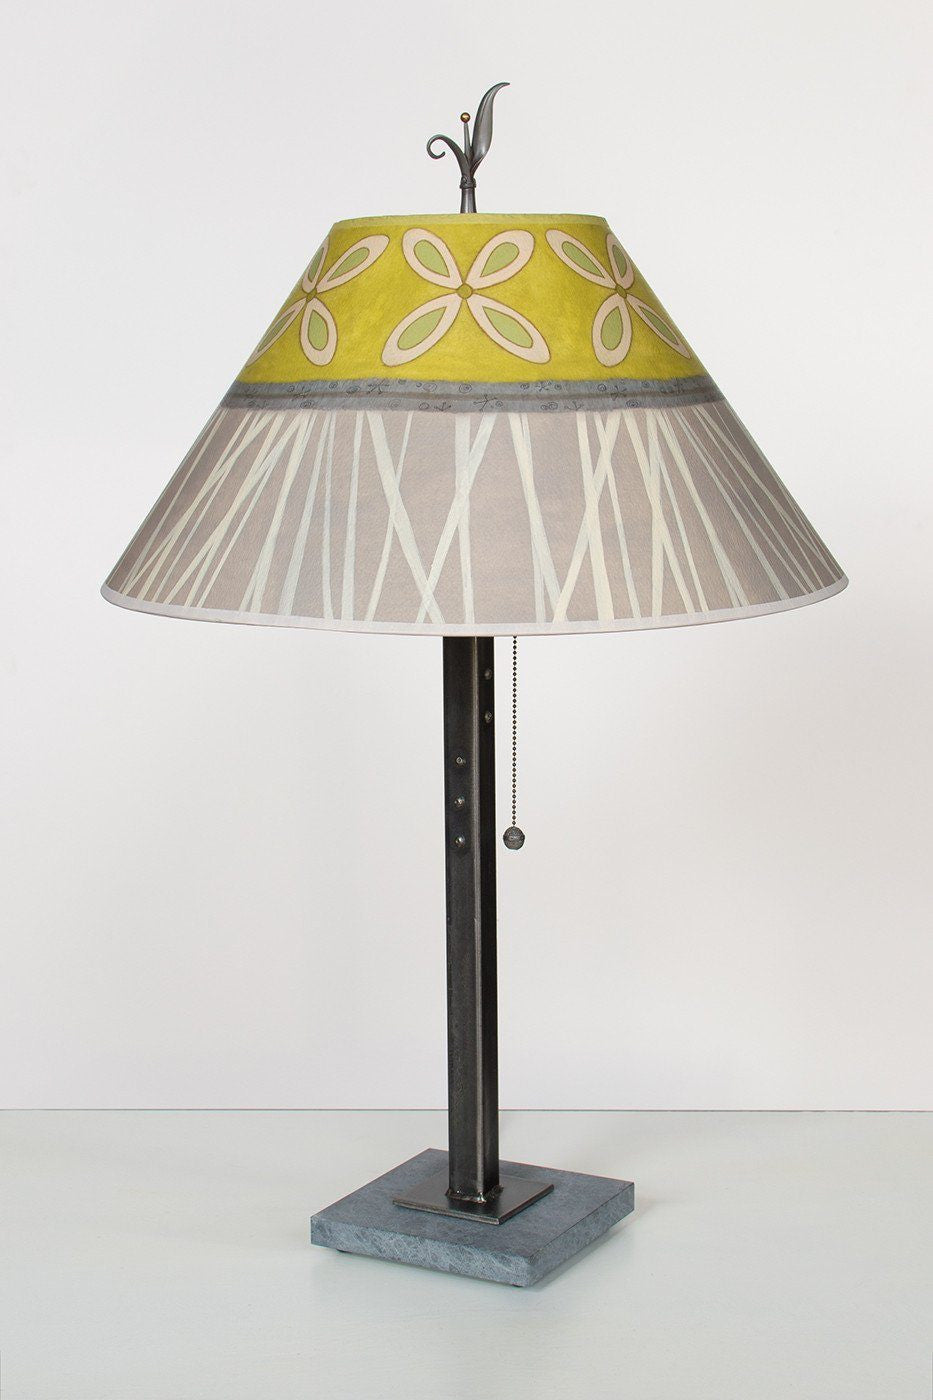 Steel Table Lamp on Italian Marble with Large Conical Shade in Kiwi